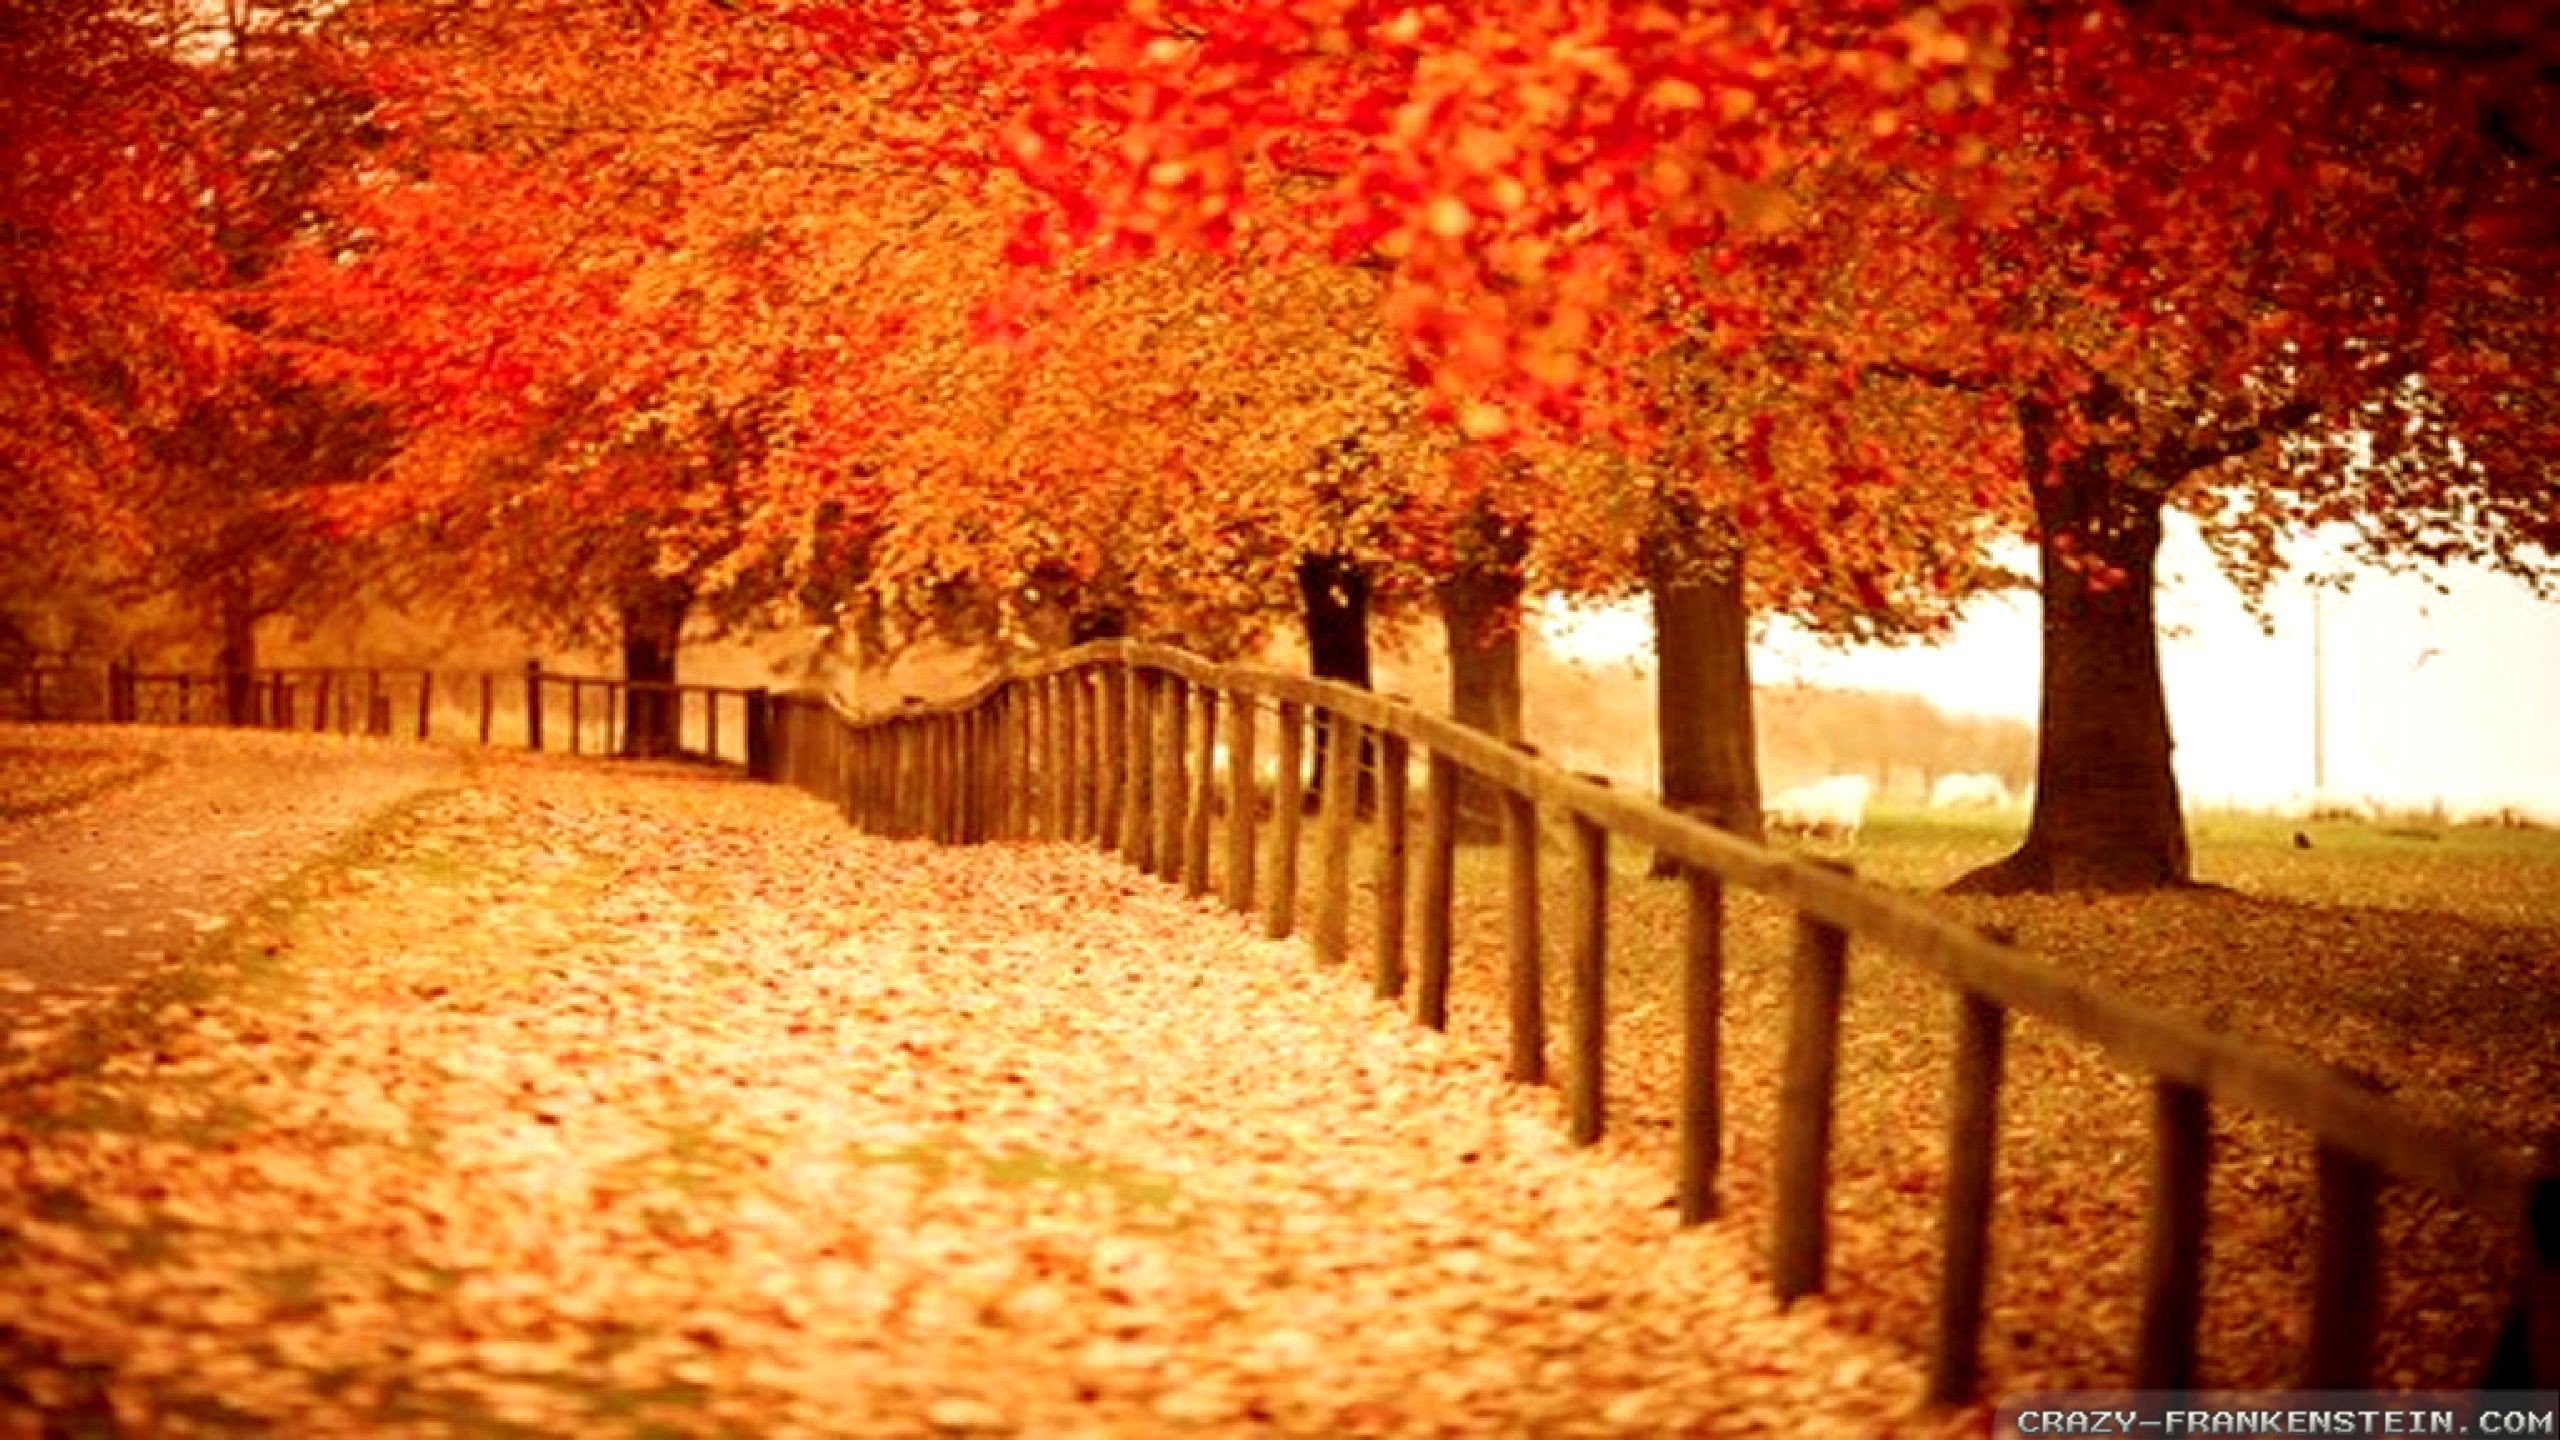 42 Autumn Backgrounds Download Free Stunning Hd: Autumn Pictures For Desktop Backgrounds ·① WallpaperTag